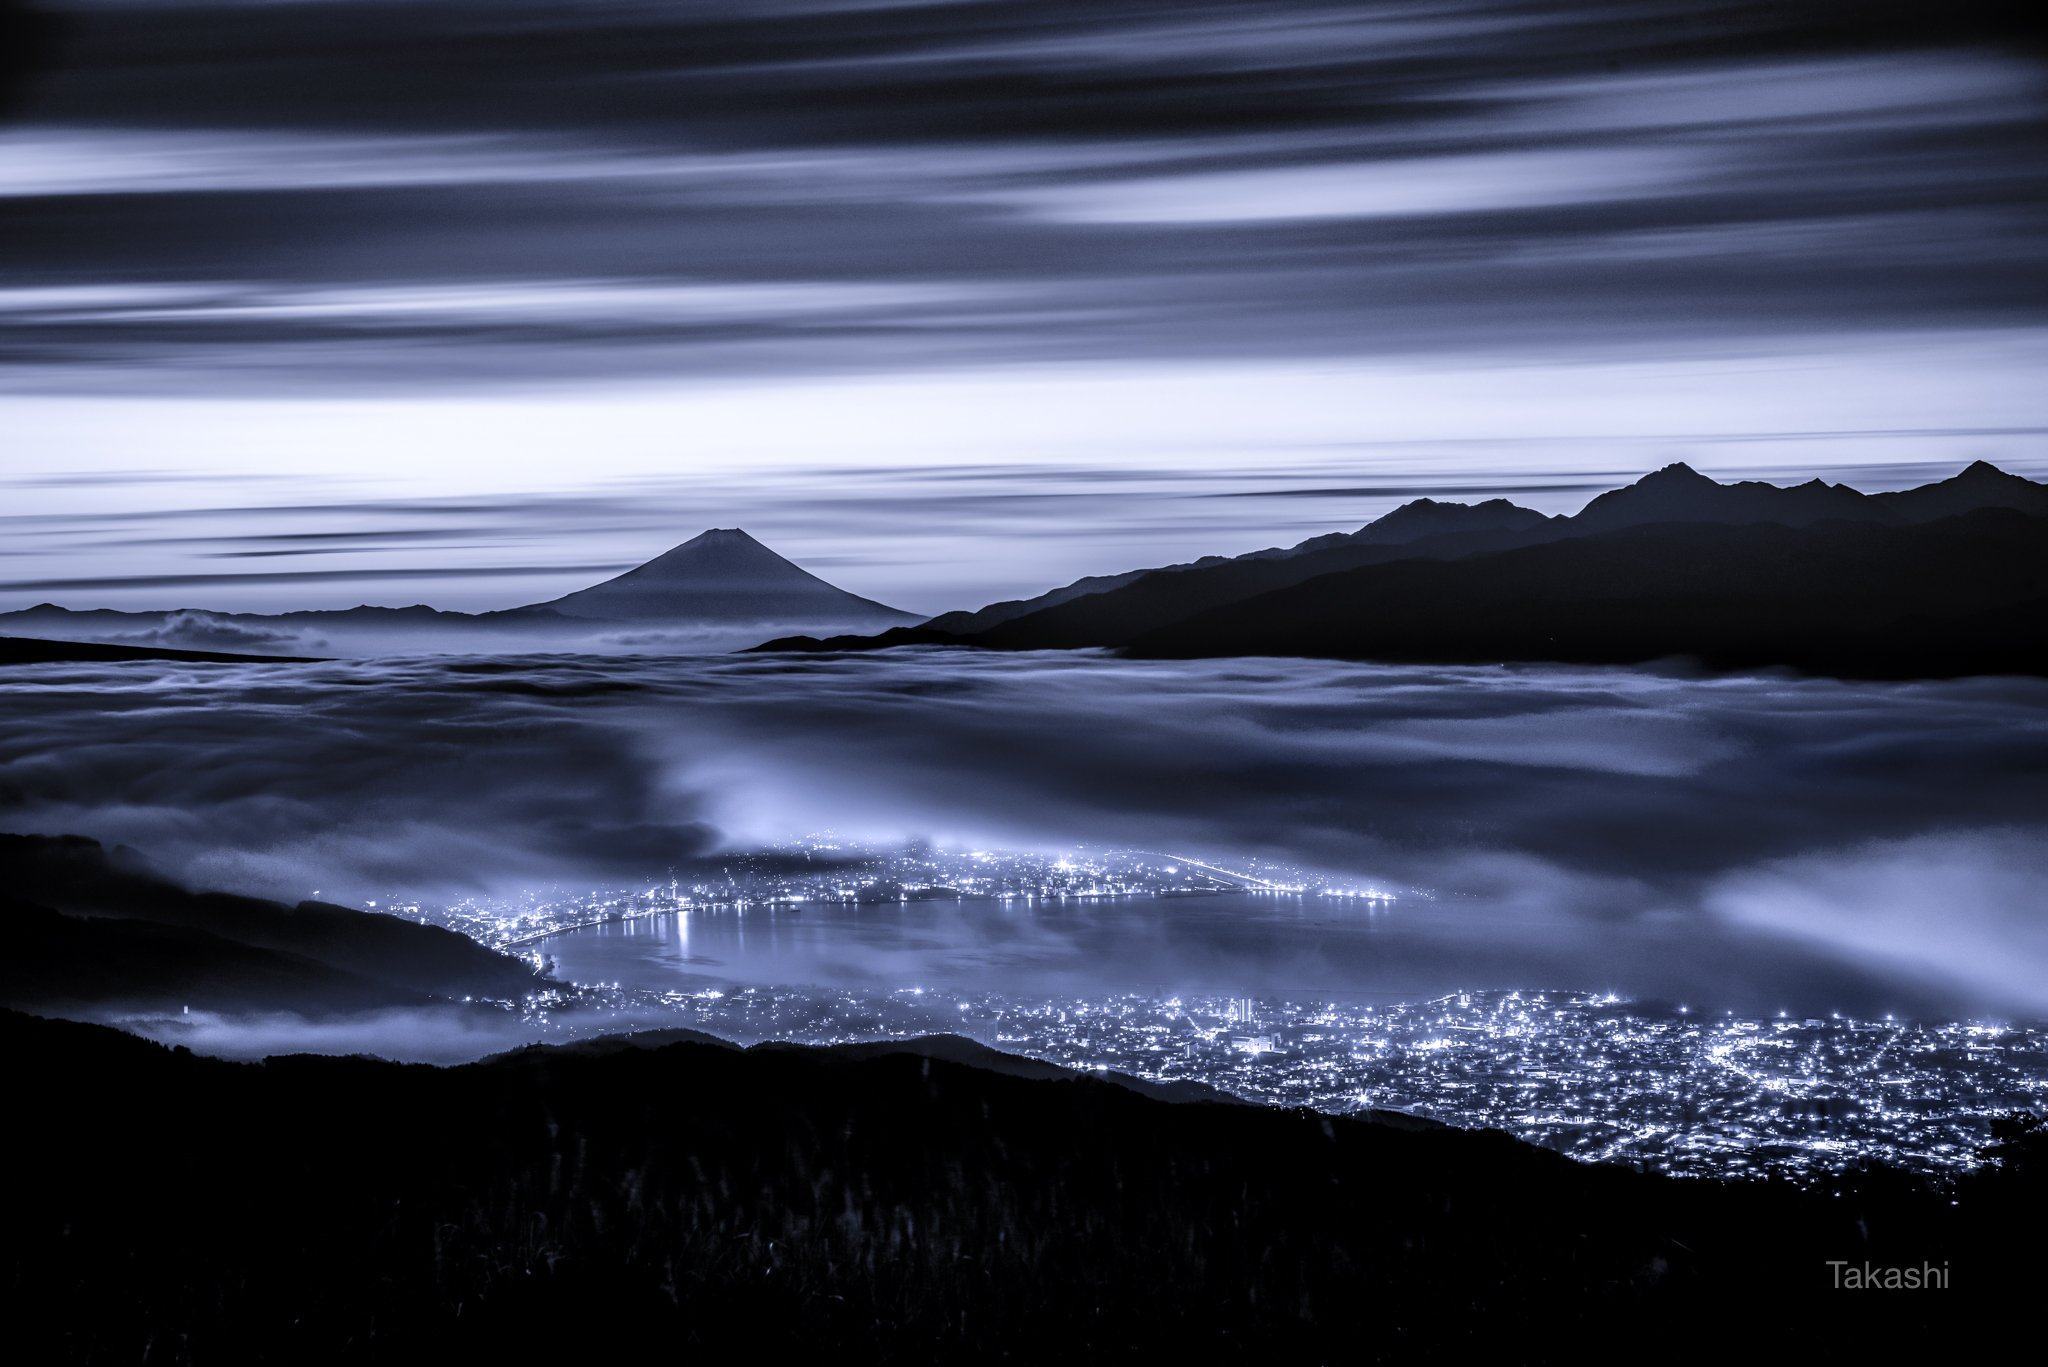 fuji,japan,mountain,clouds,sky,lake,night,wonderful,amazing,, Takashi